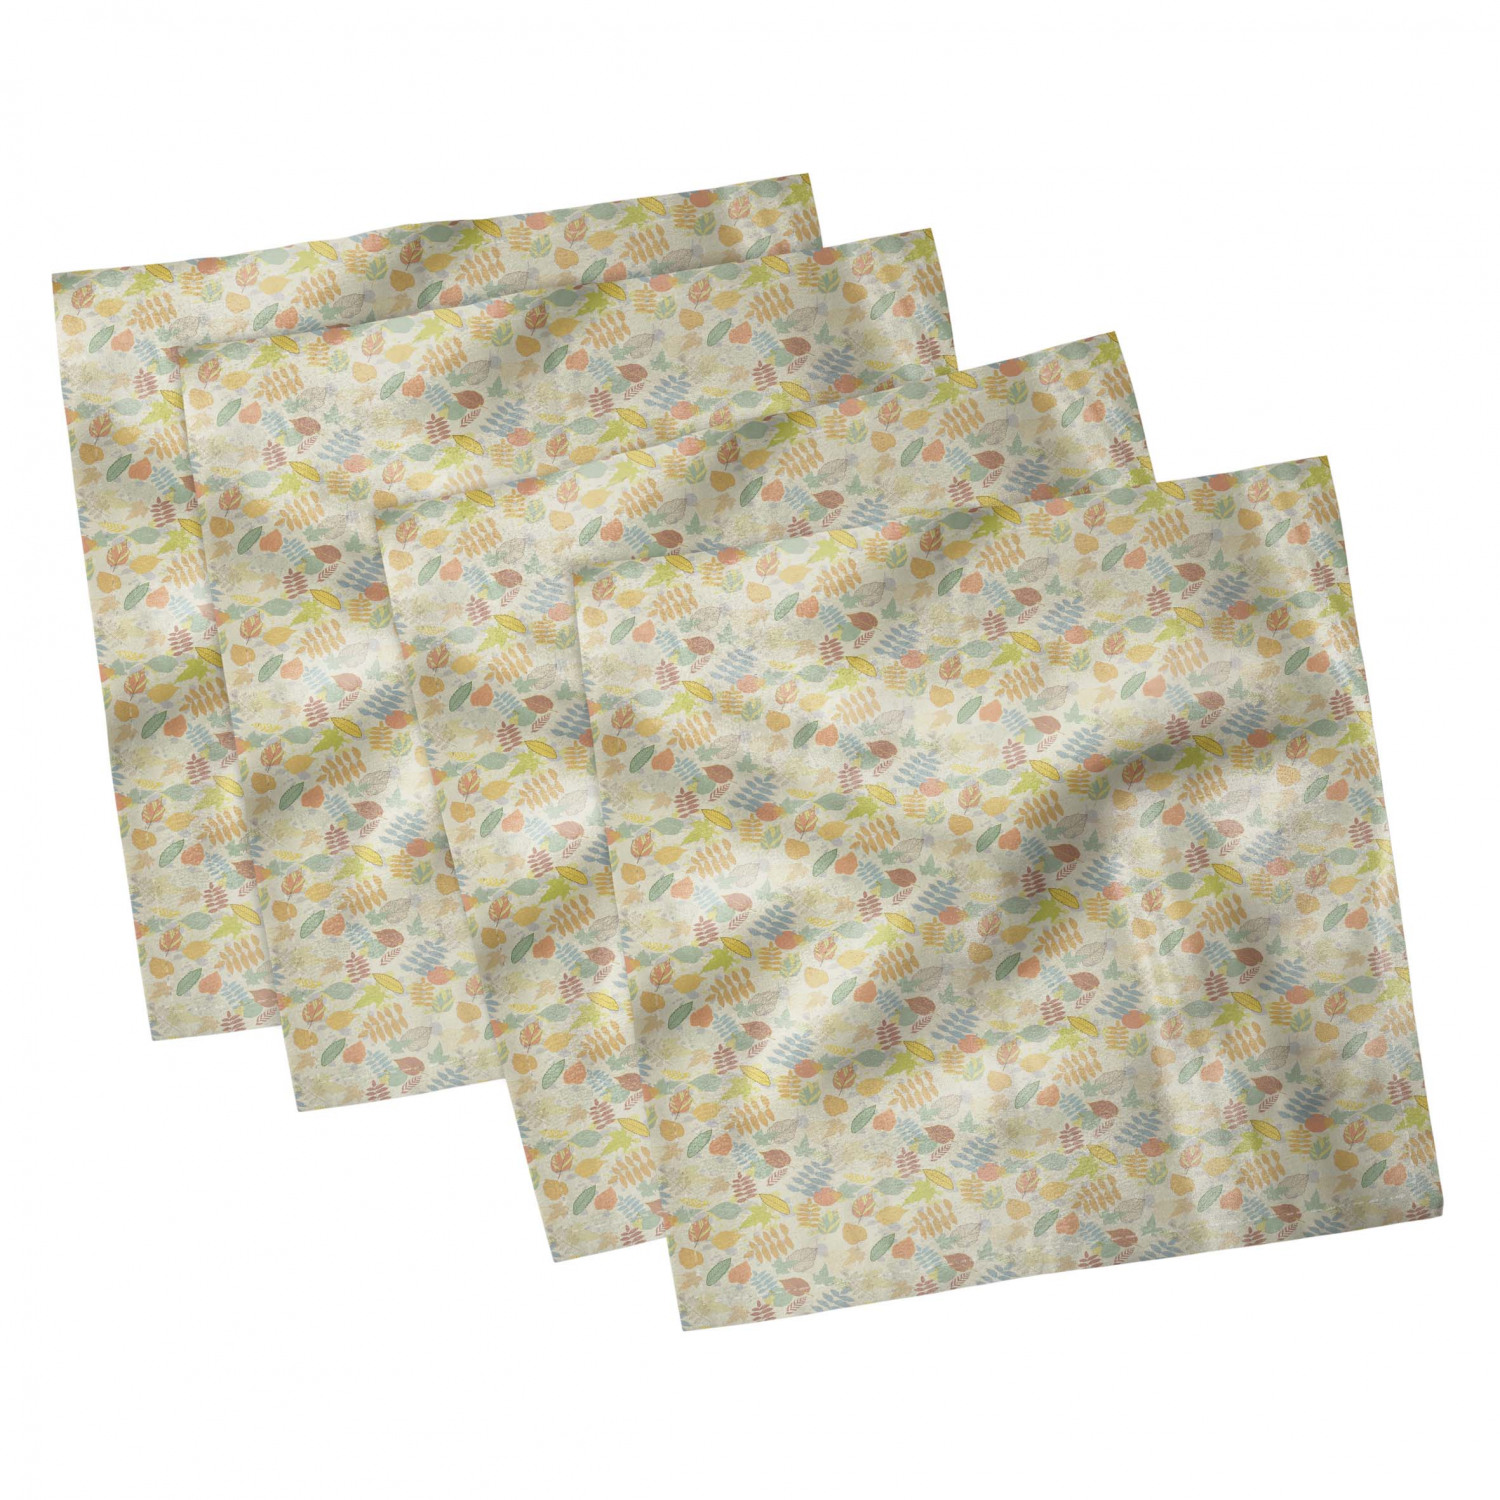 thumbnail 113 - Ambesonne Autumn Fall Decorative Satin Napkins Set of 4 Party Dinner Fabric